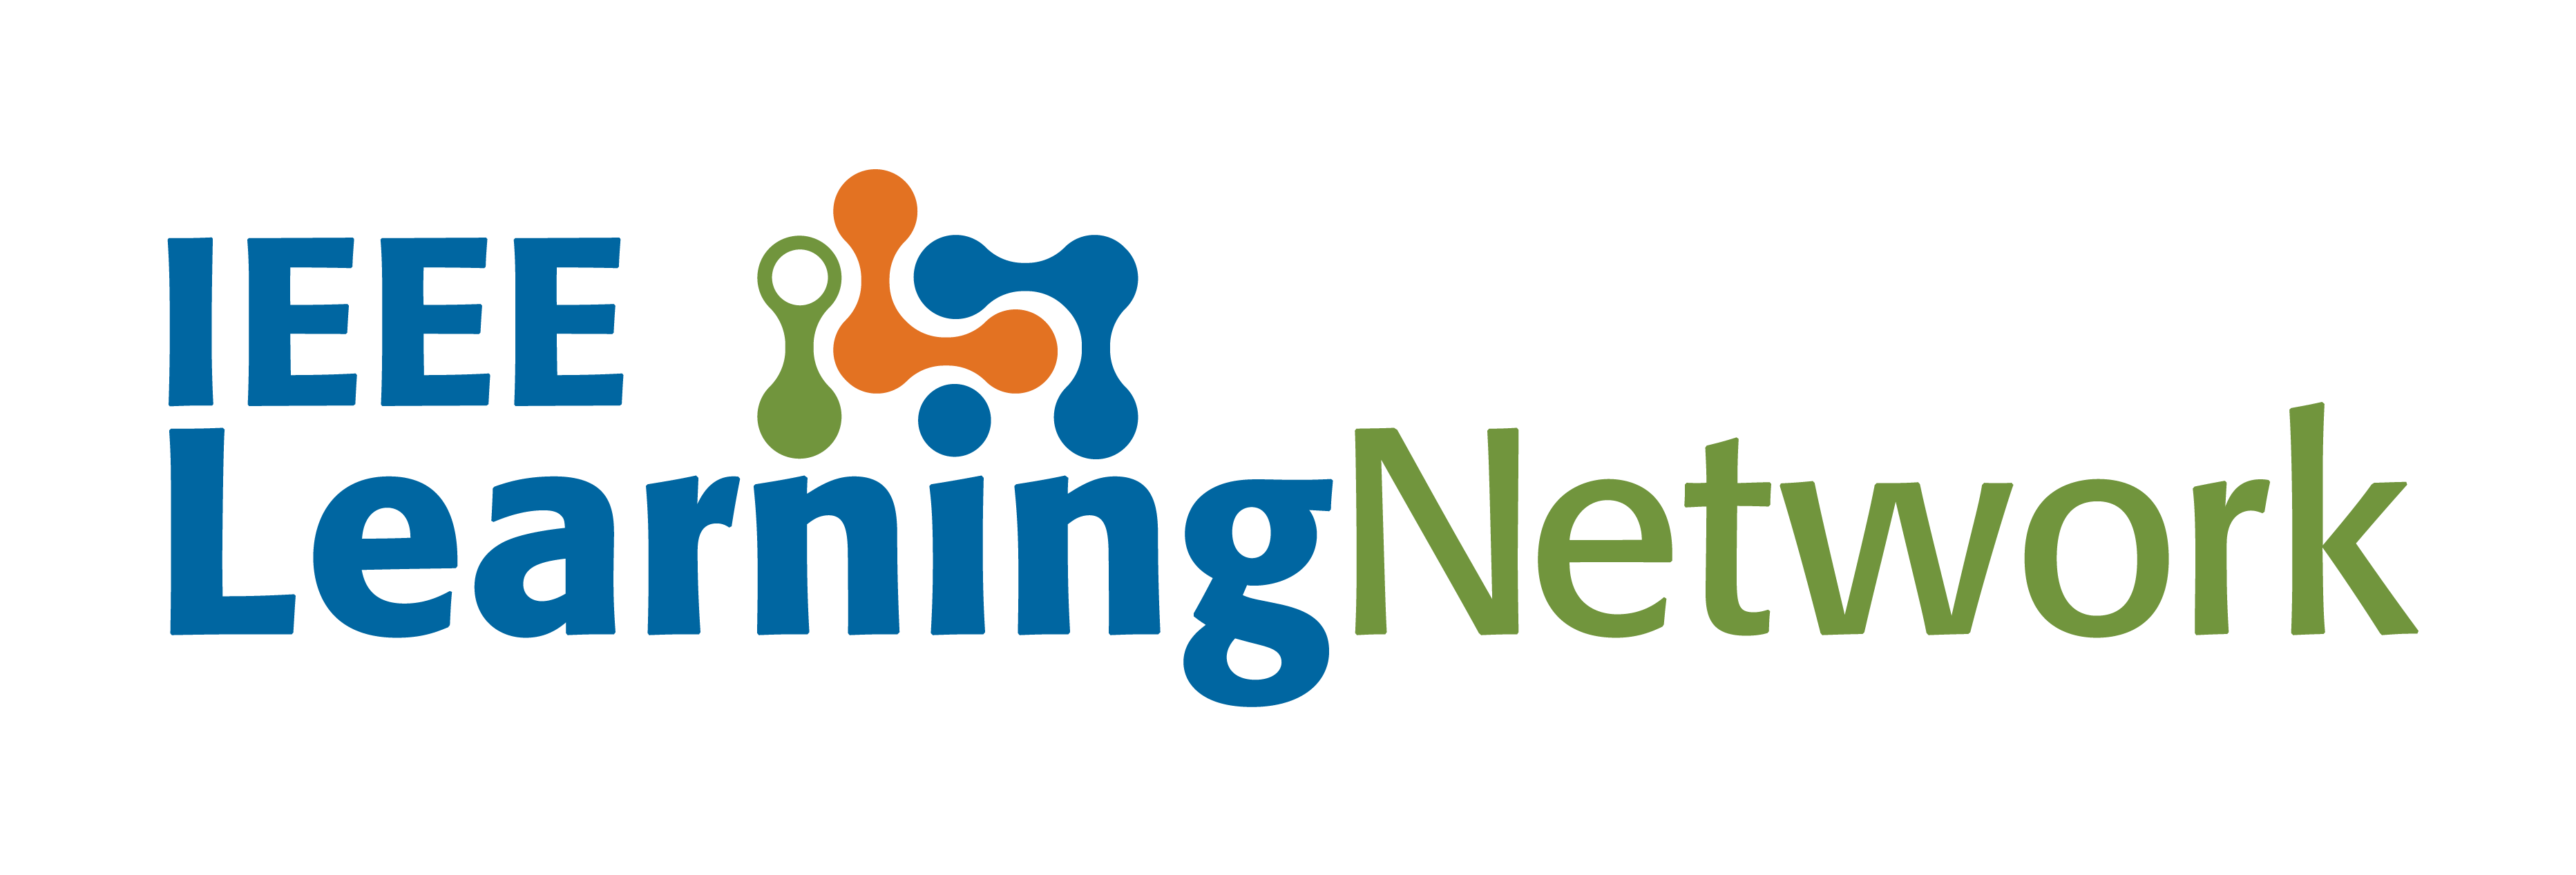 IEEE Learning Network logo